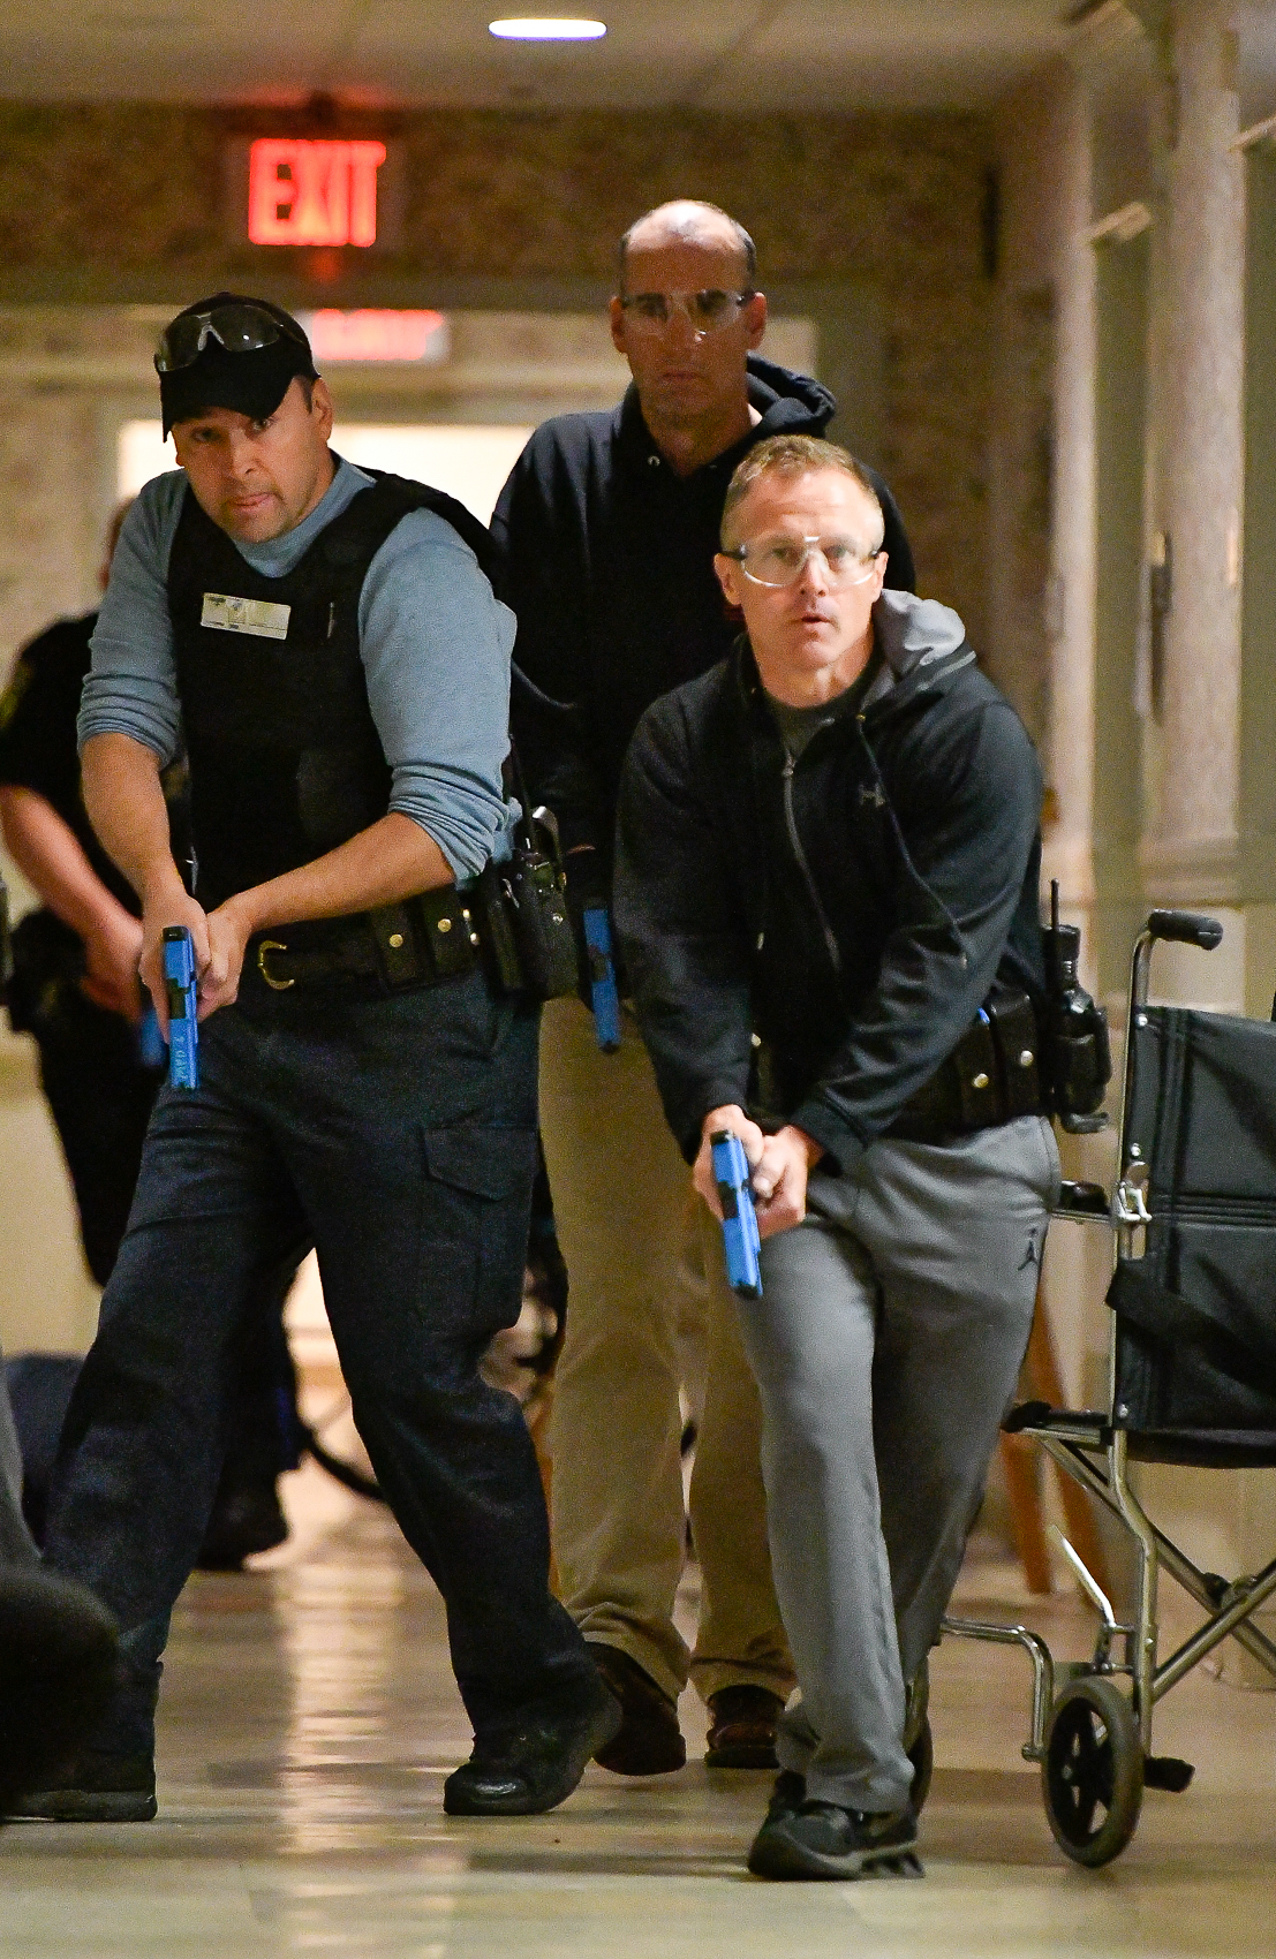 Melrose Police Sgt. Josh Crowley, Patrolman Brian Ladner and Sgt. Dave Mackey take part in an active shooter drill inside Wingate at Melrose, Friday, May 12, 2017. [Wicked Local Staff Photo / David Sokol]